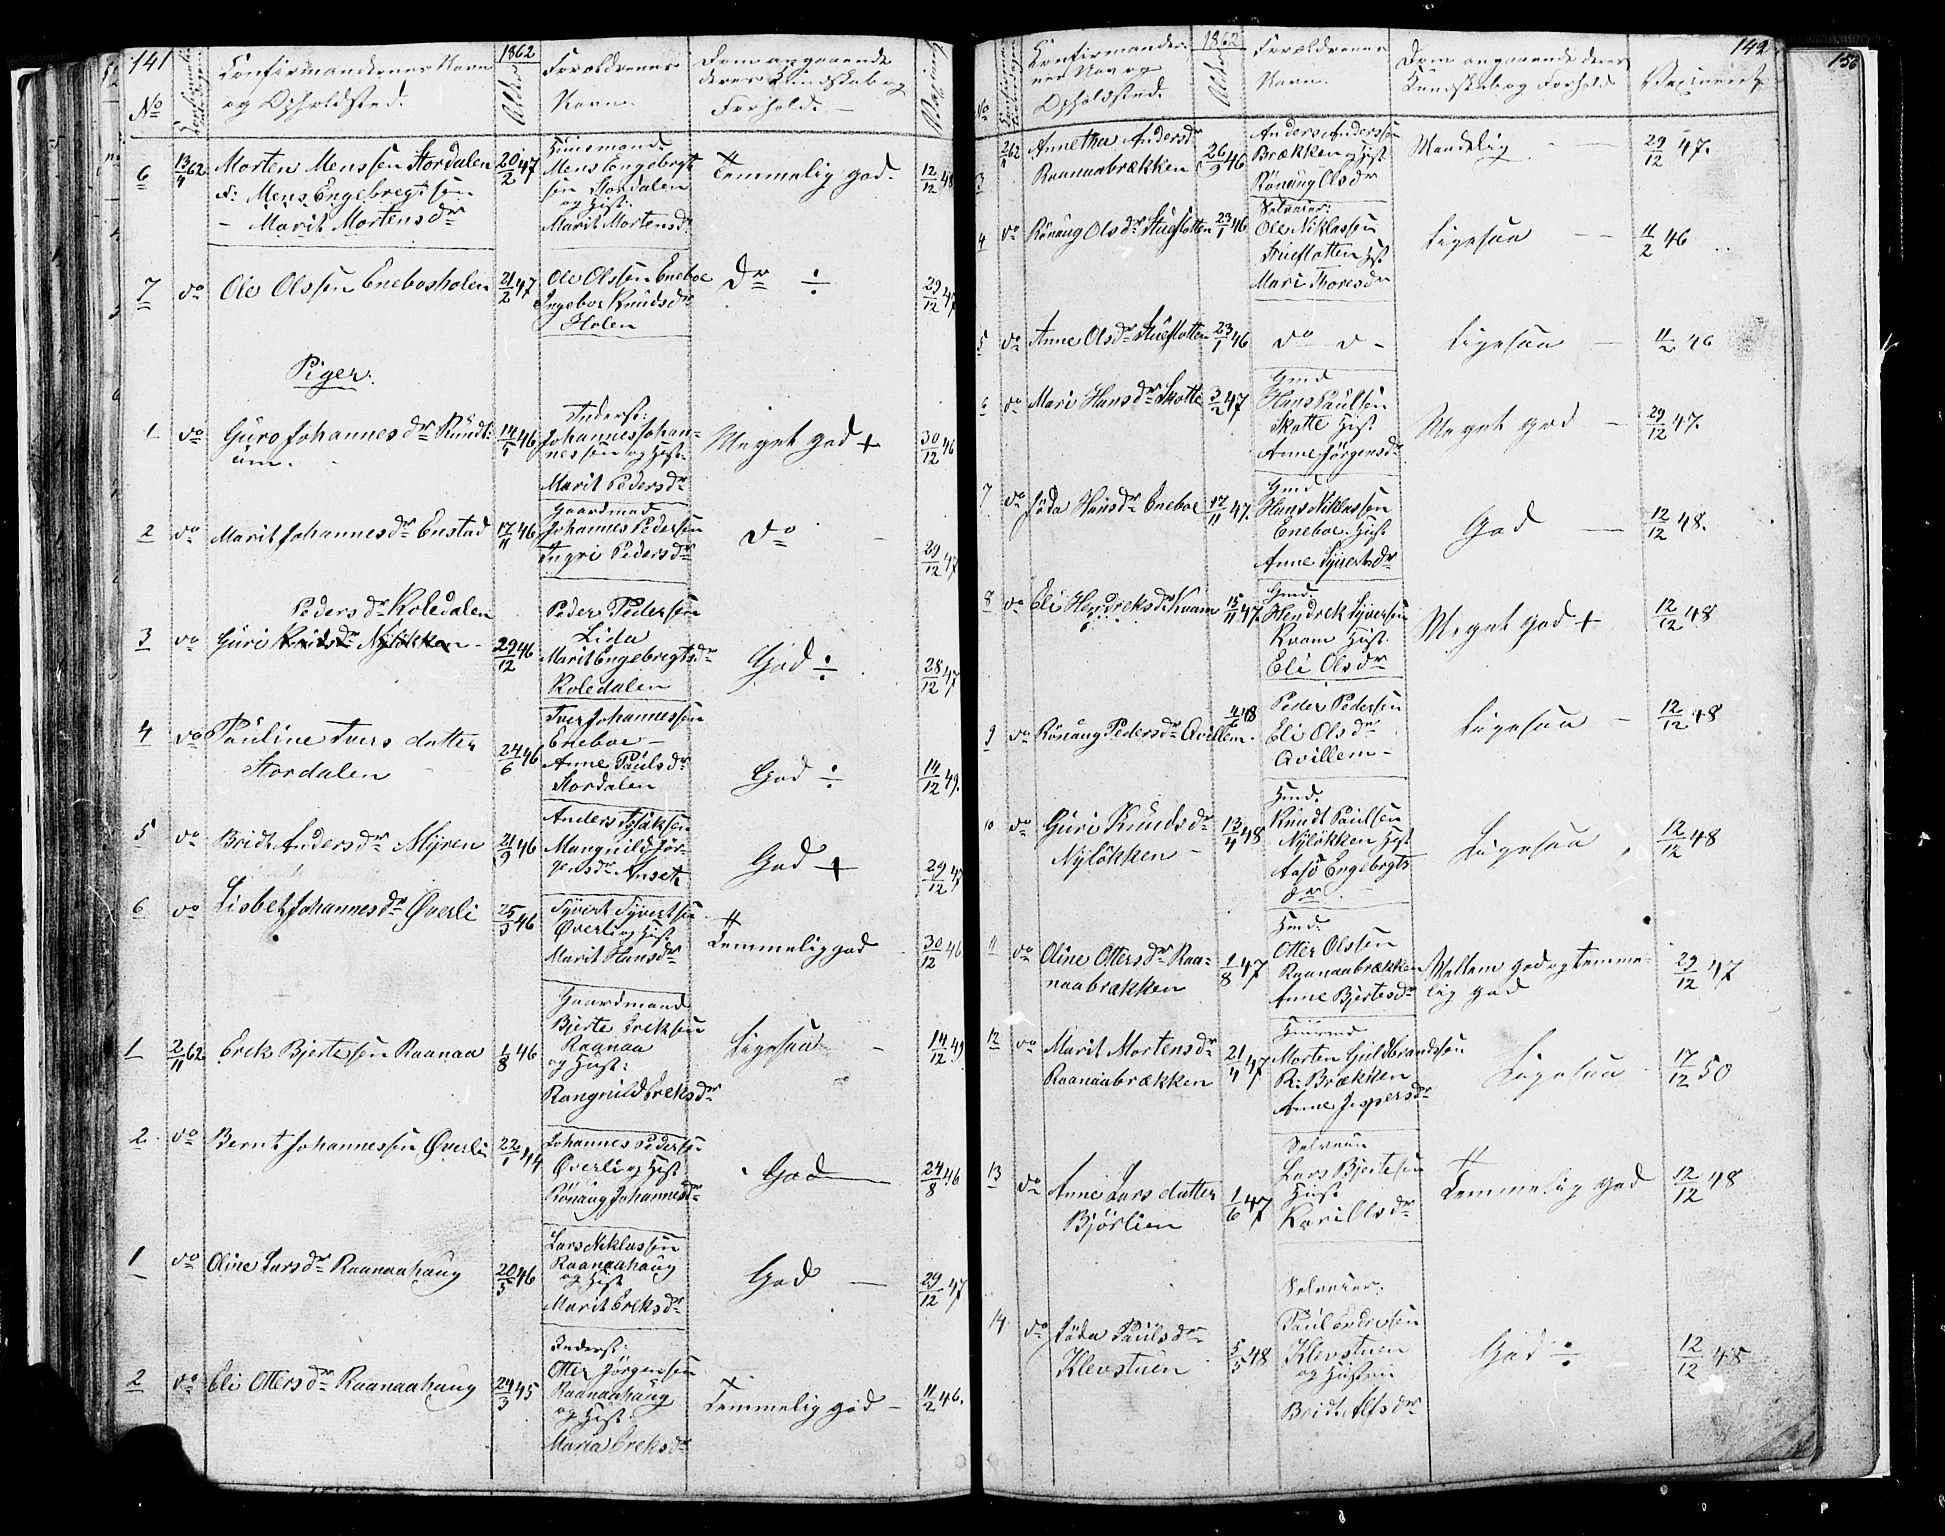 SAH, Lesja prestekontor, Parish register (copy) no. 4, 1842-1871, p. 141-142